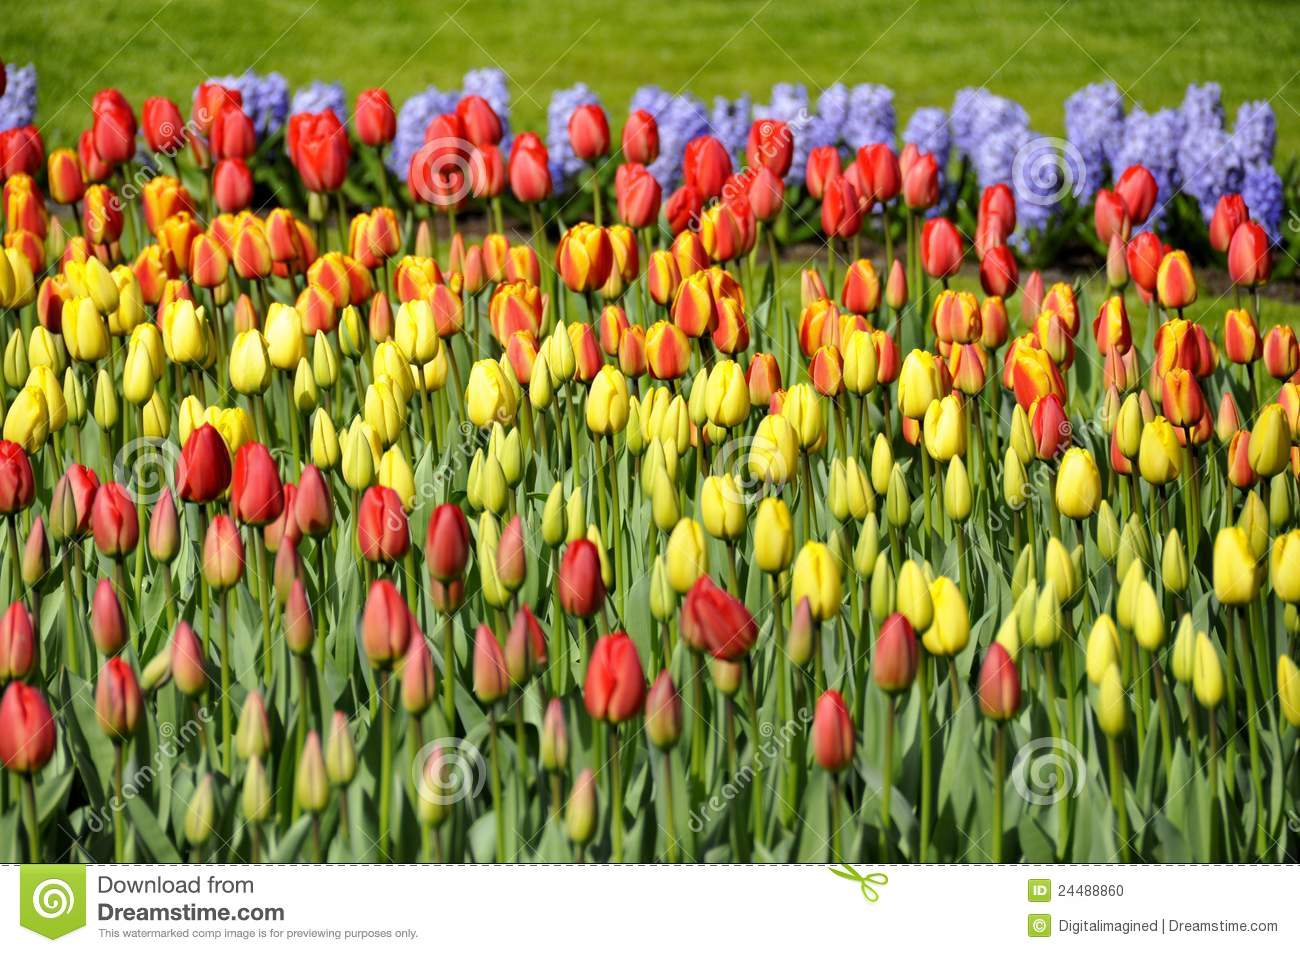 Spring flowers in different colors stock photo image for What makes flowers different colors